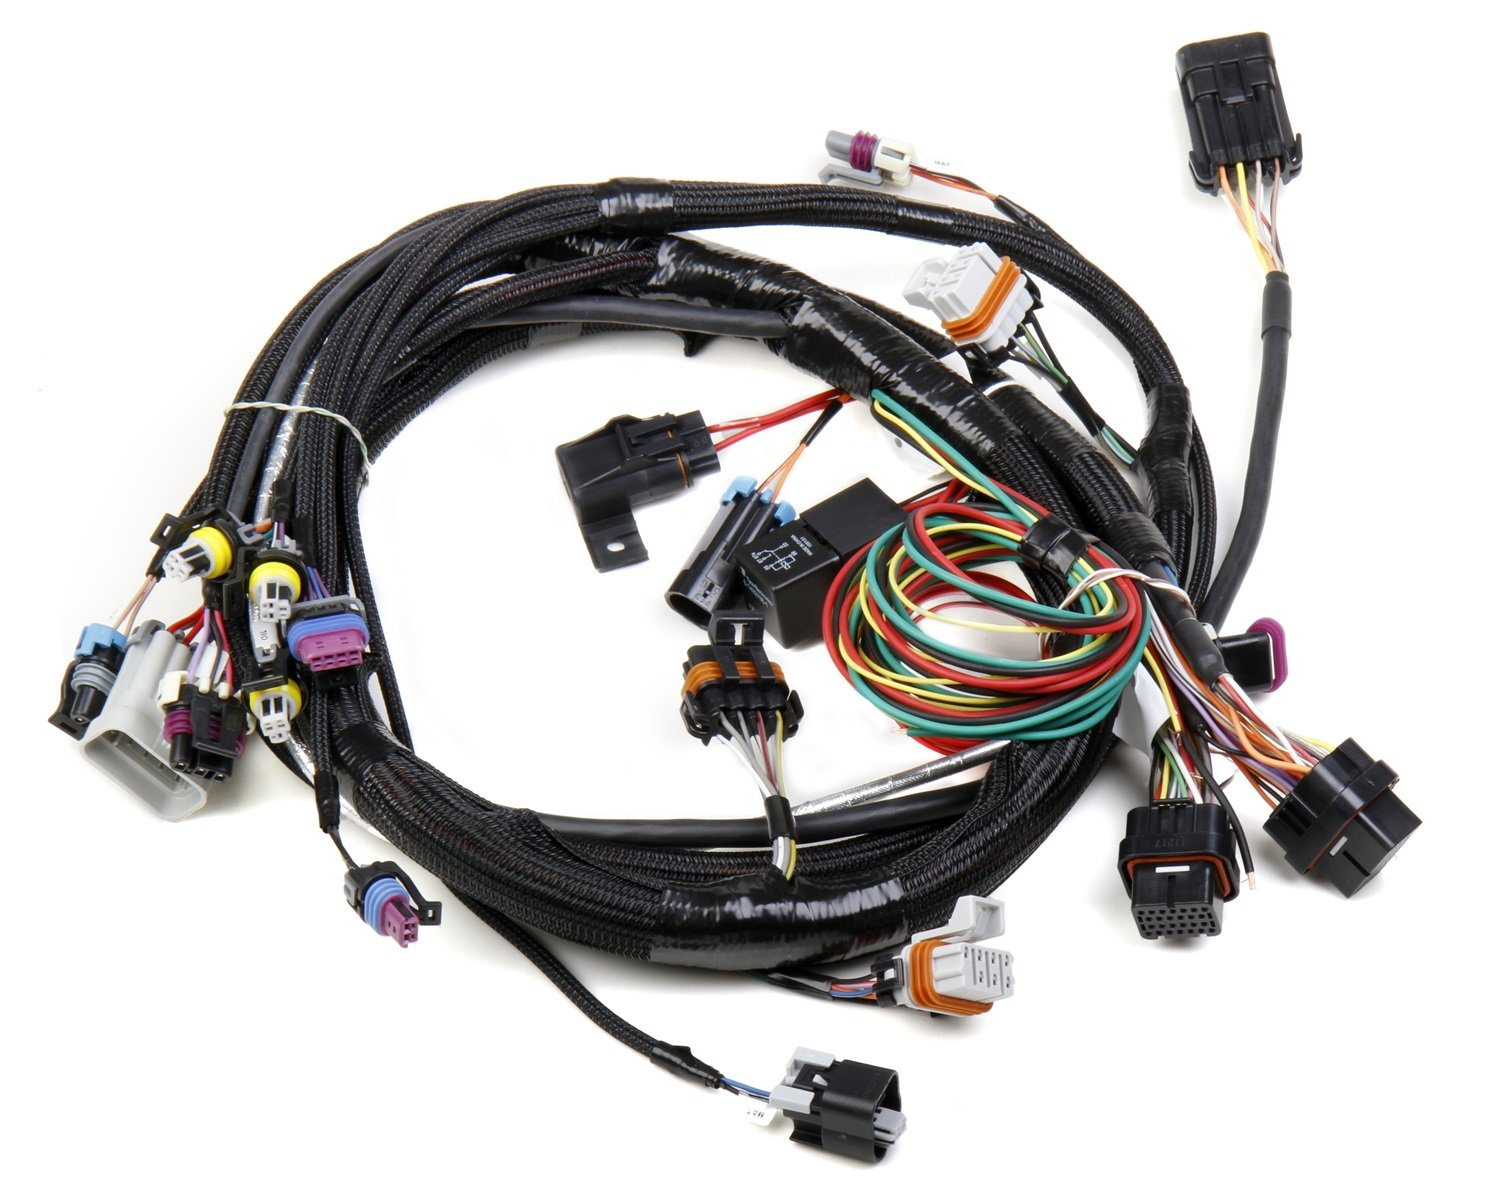 71R9M48Oc L._SL1500_ amazon com holley 558 102 ls1 main harness automotive 6.5 Diesel Wiring Harness at creativeand.co